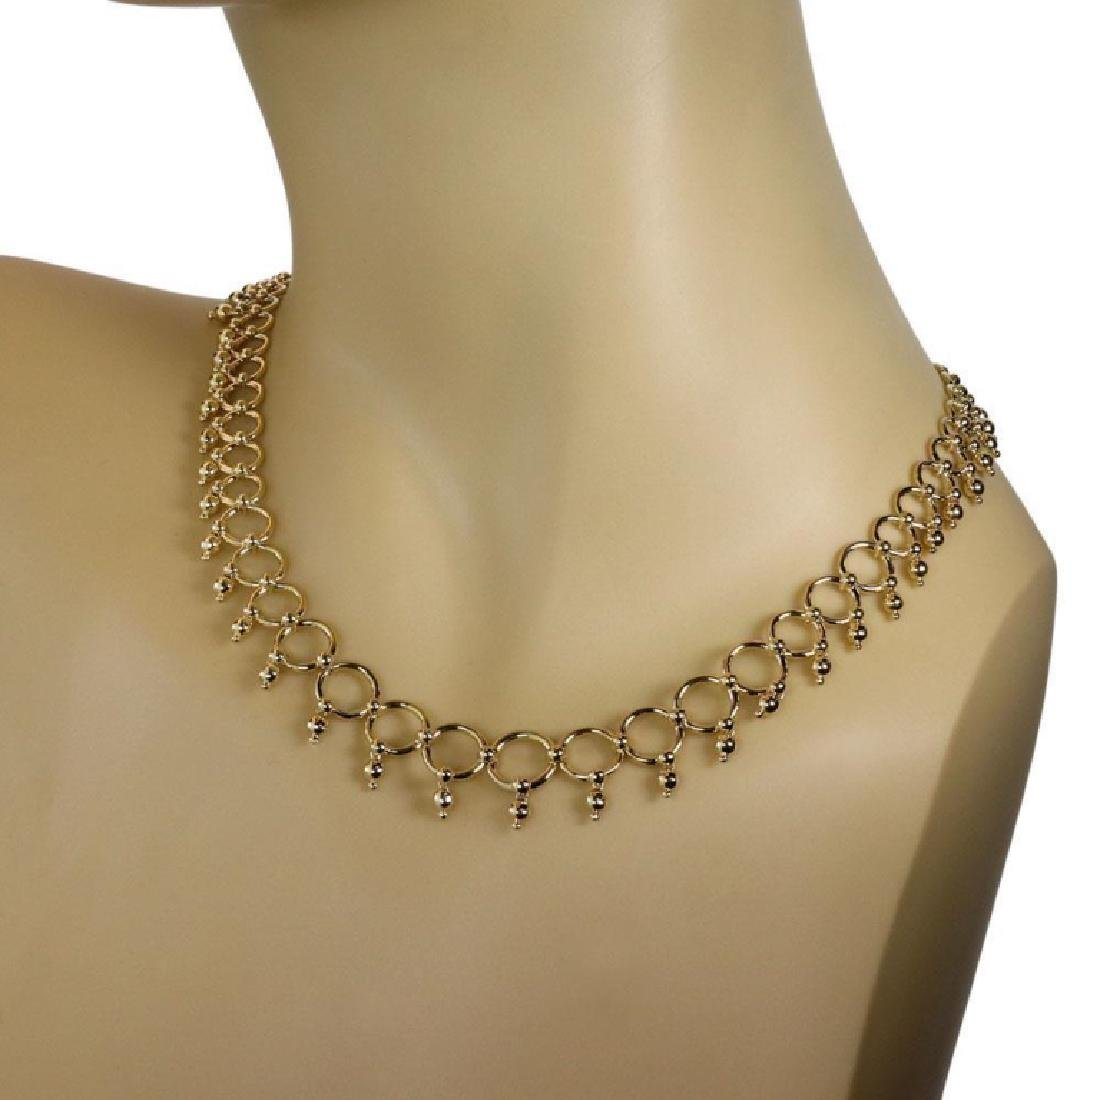 Tiffany & Co. 18k Gold Circle Bead Link Necklace - 4